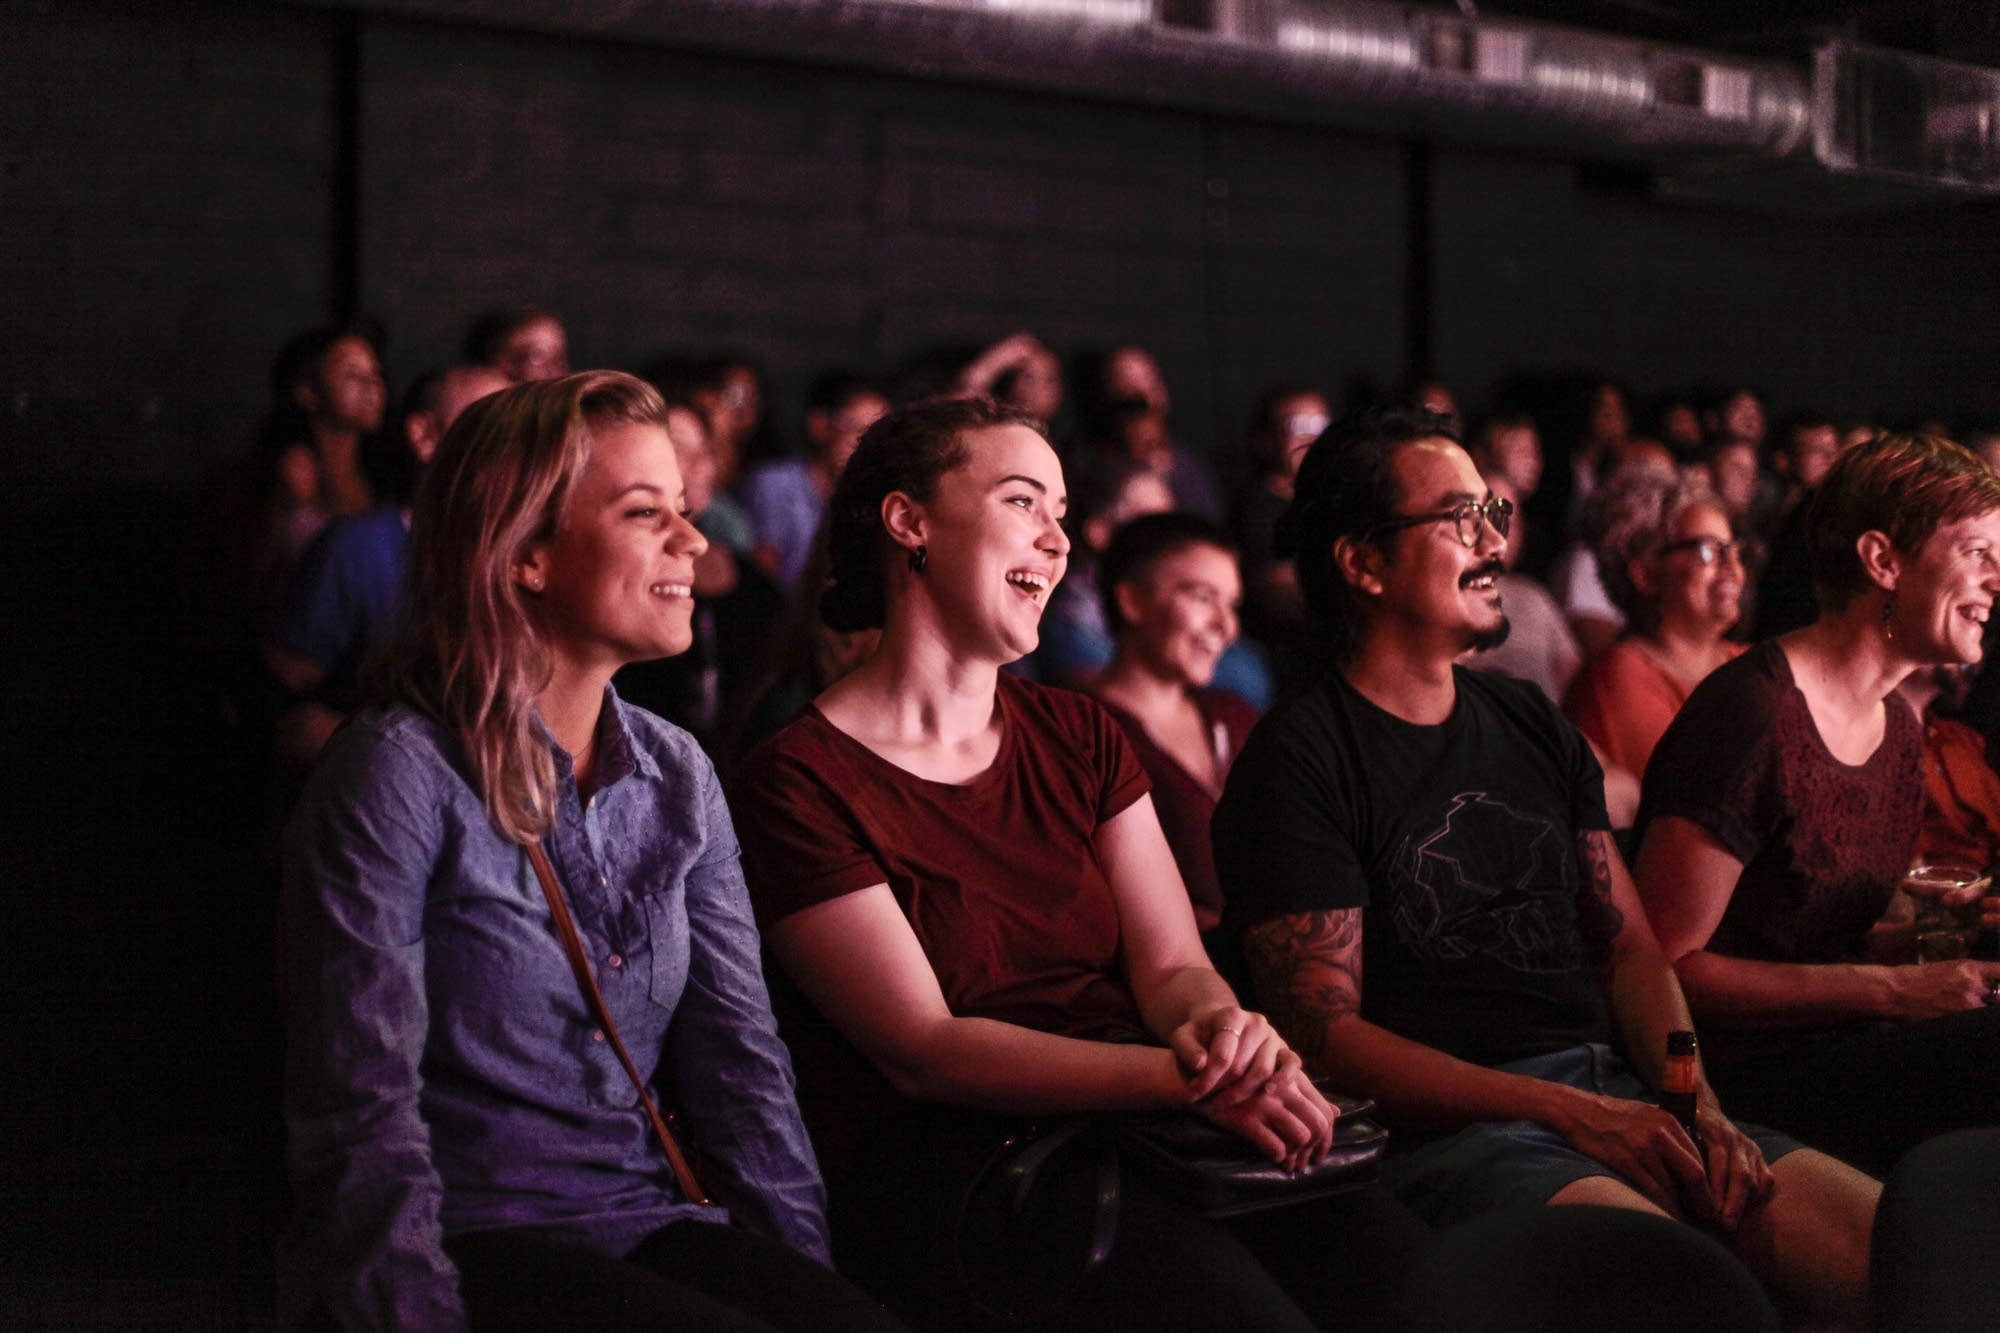 an audience laughing at a comedy show